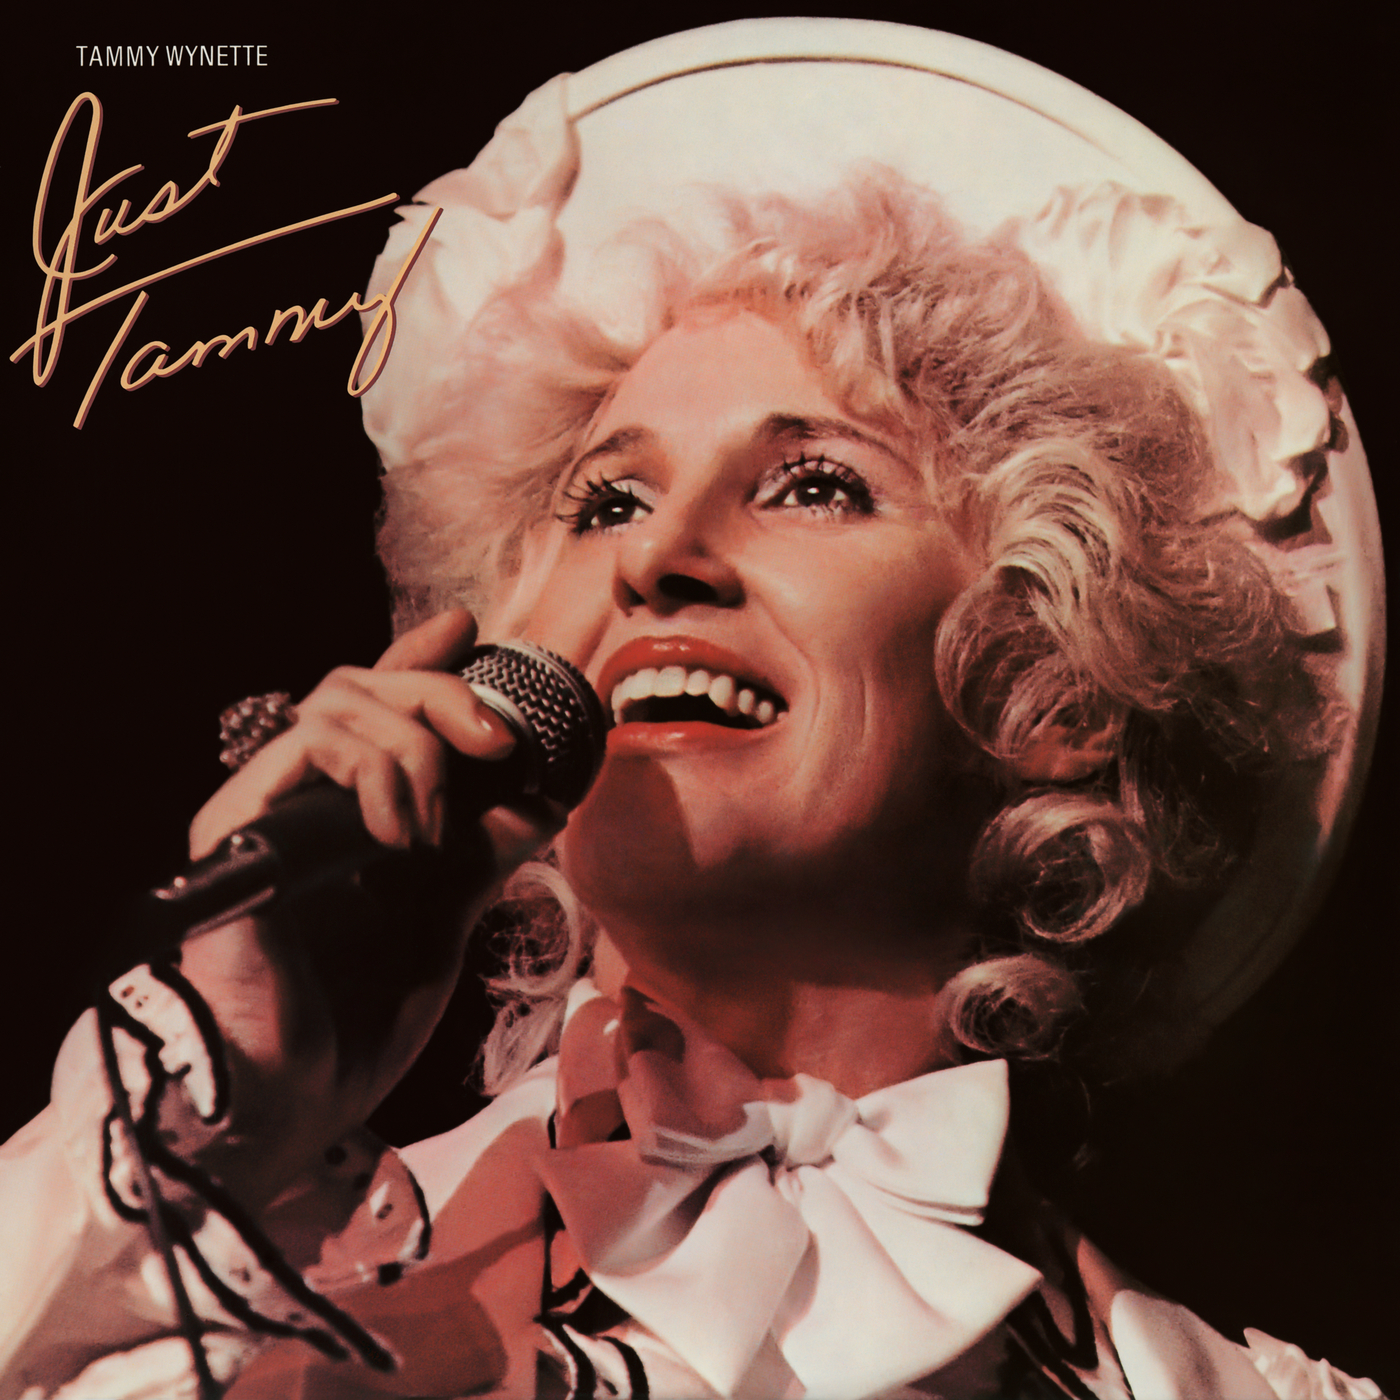 Just Tammy - Tammy Wynette